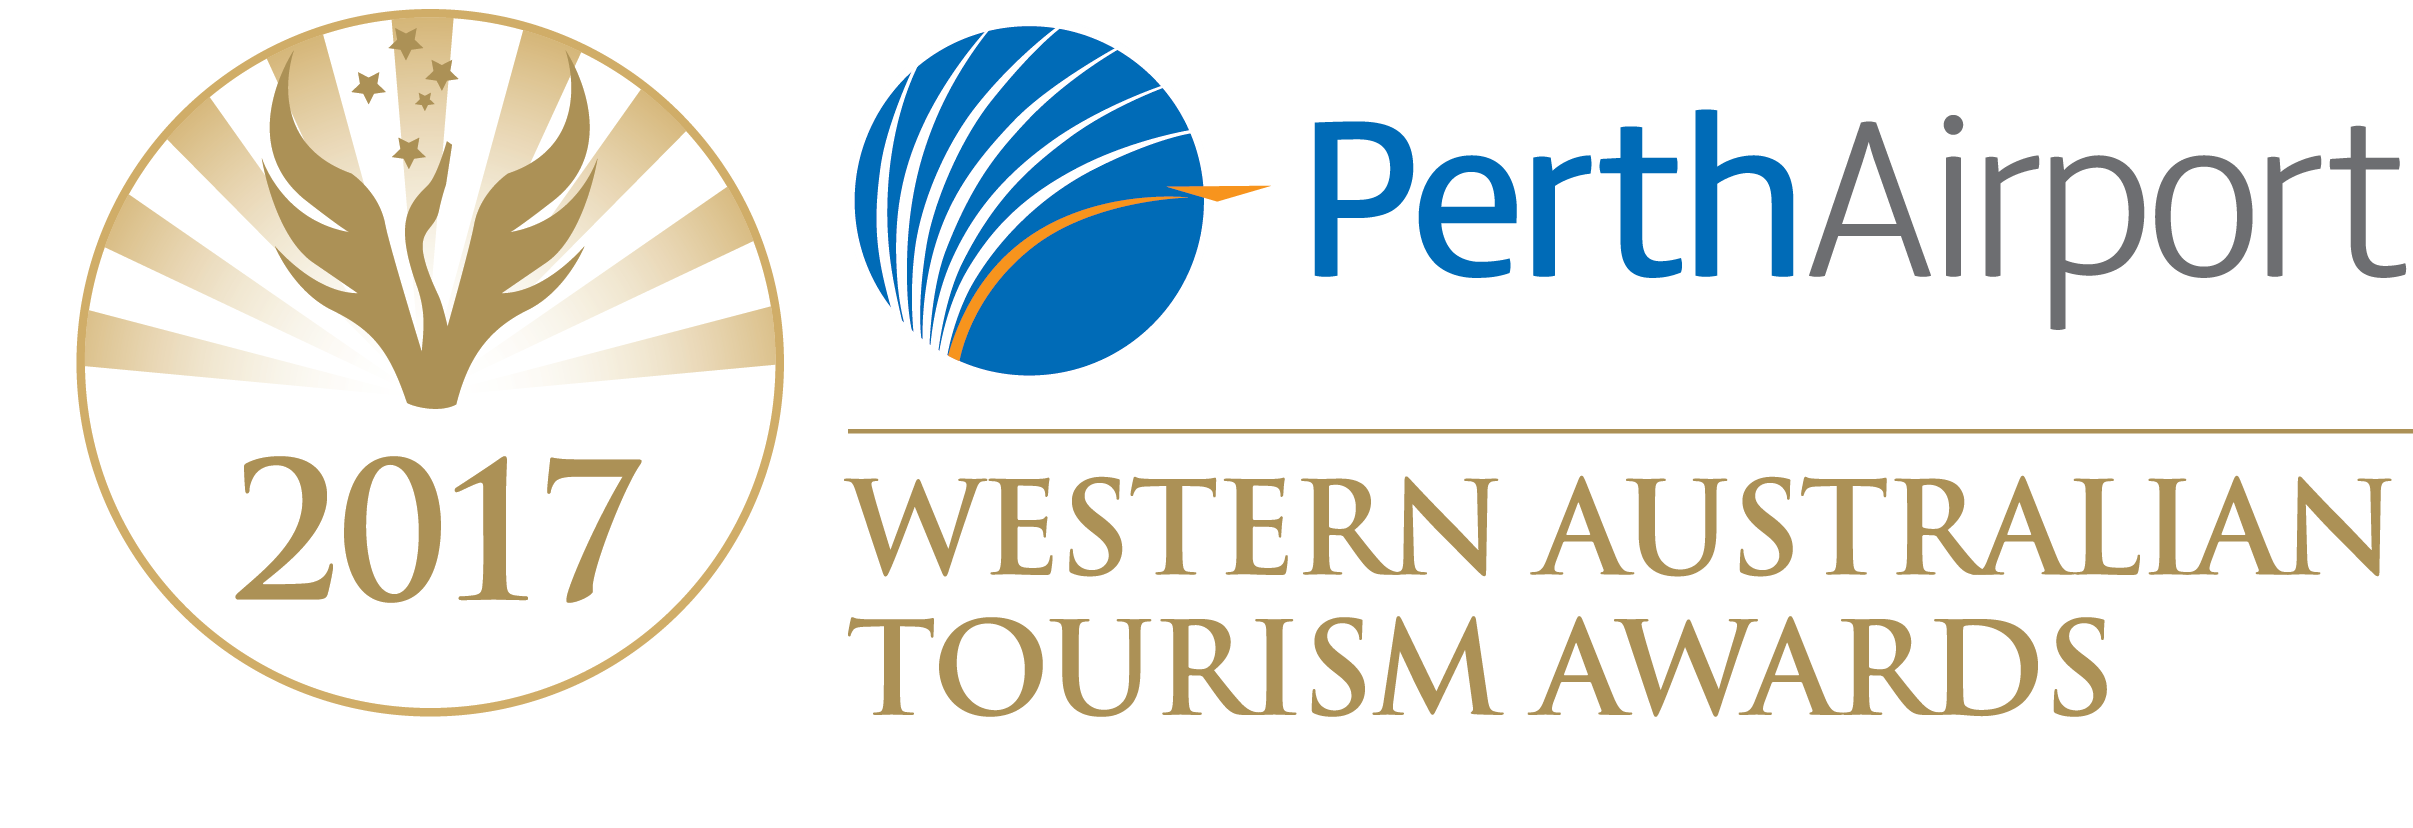 WA Tourism Awards Workshop Webinar | 28 June 17